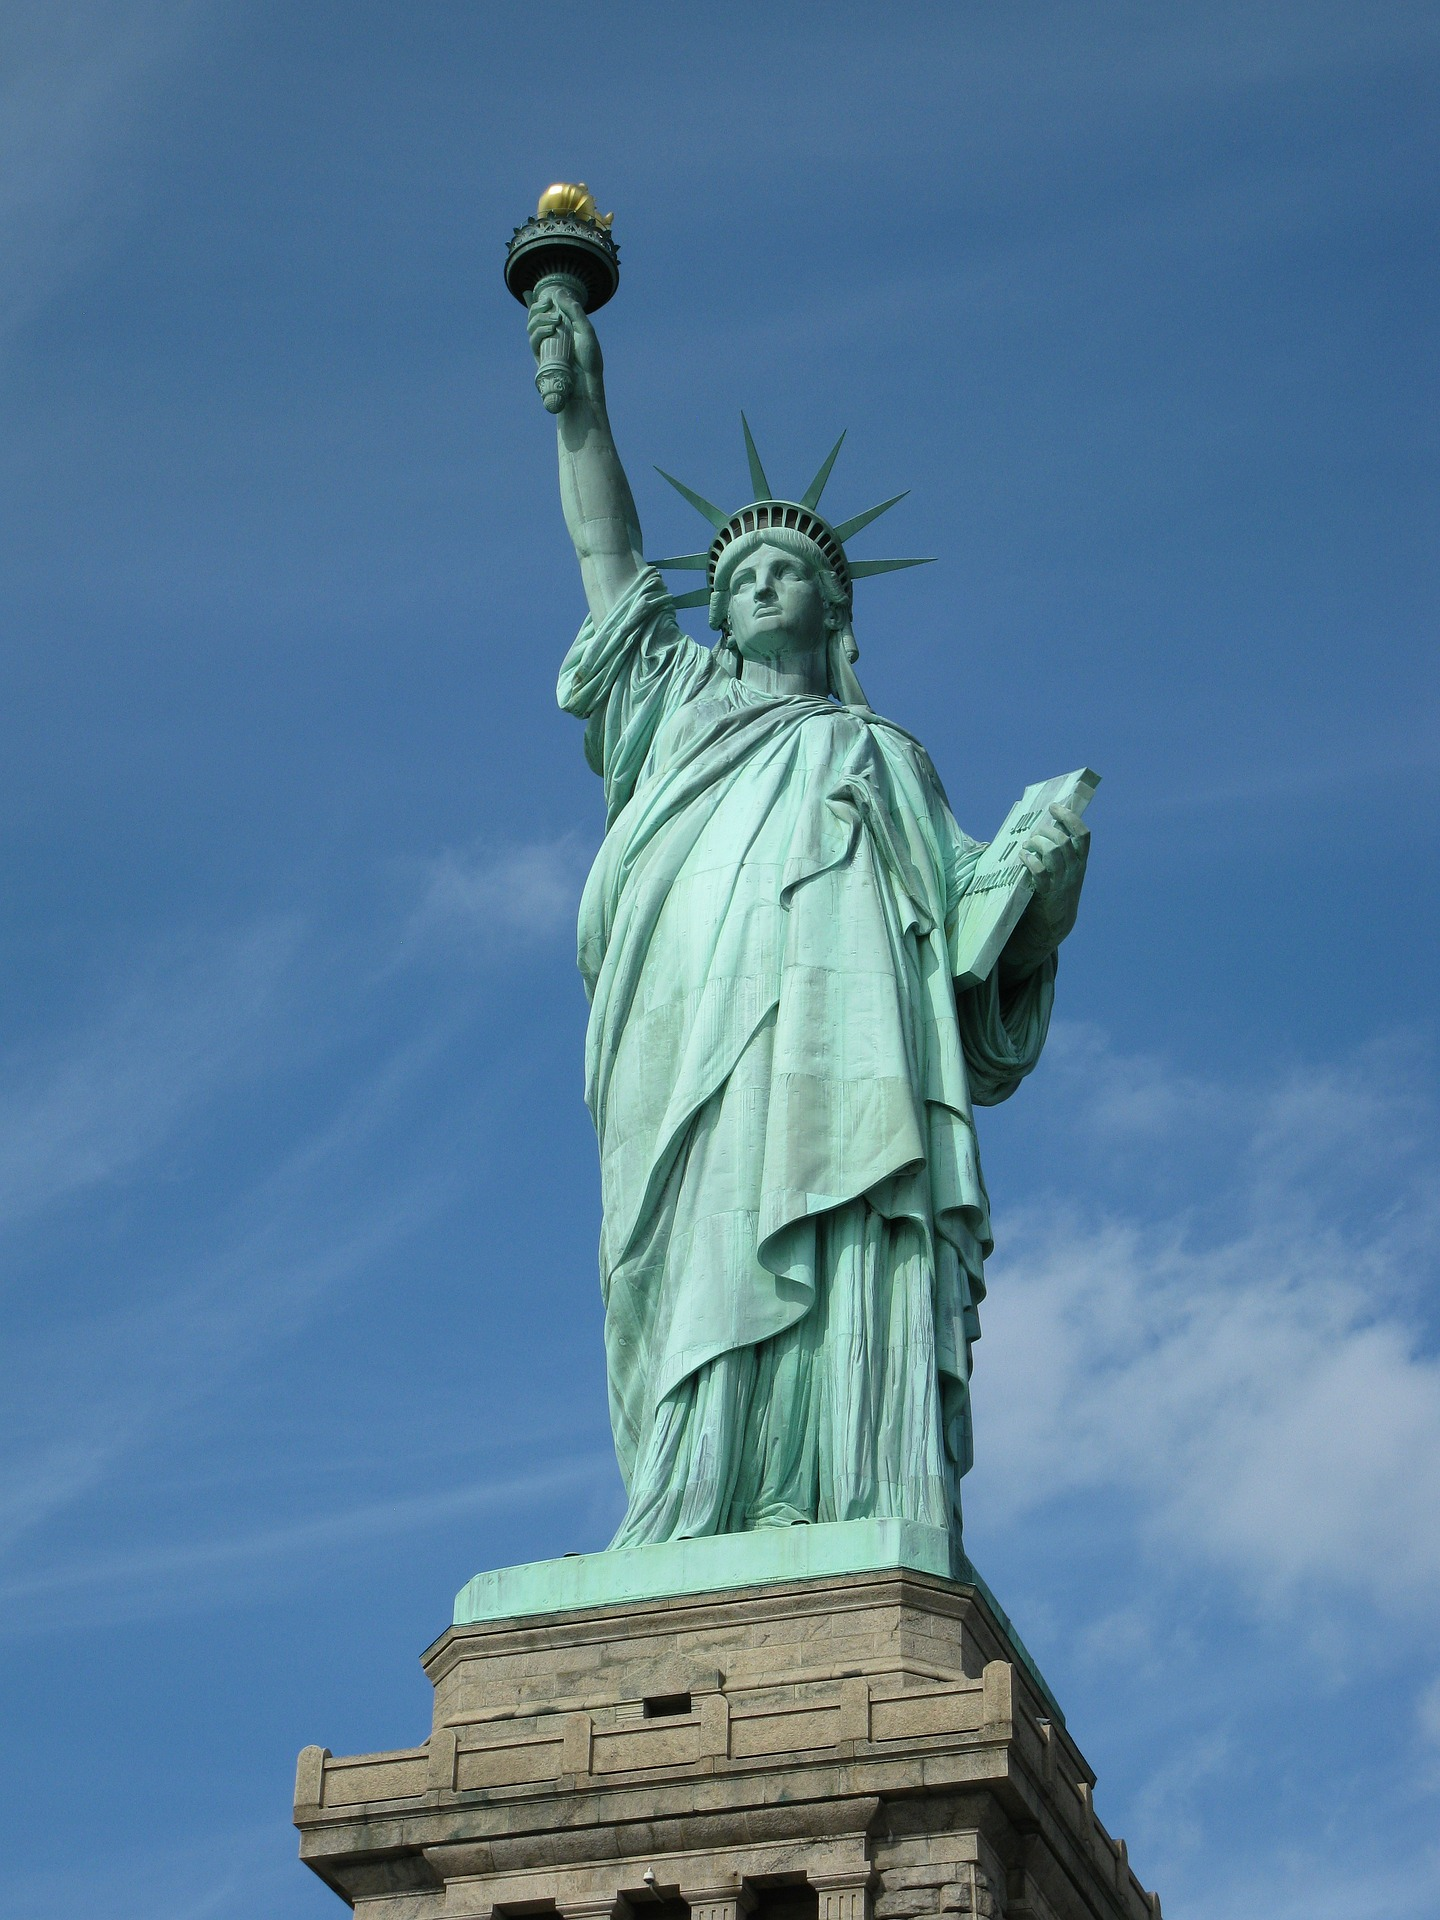 queen-of-liberty-202218_1920